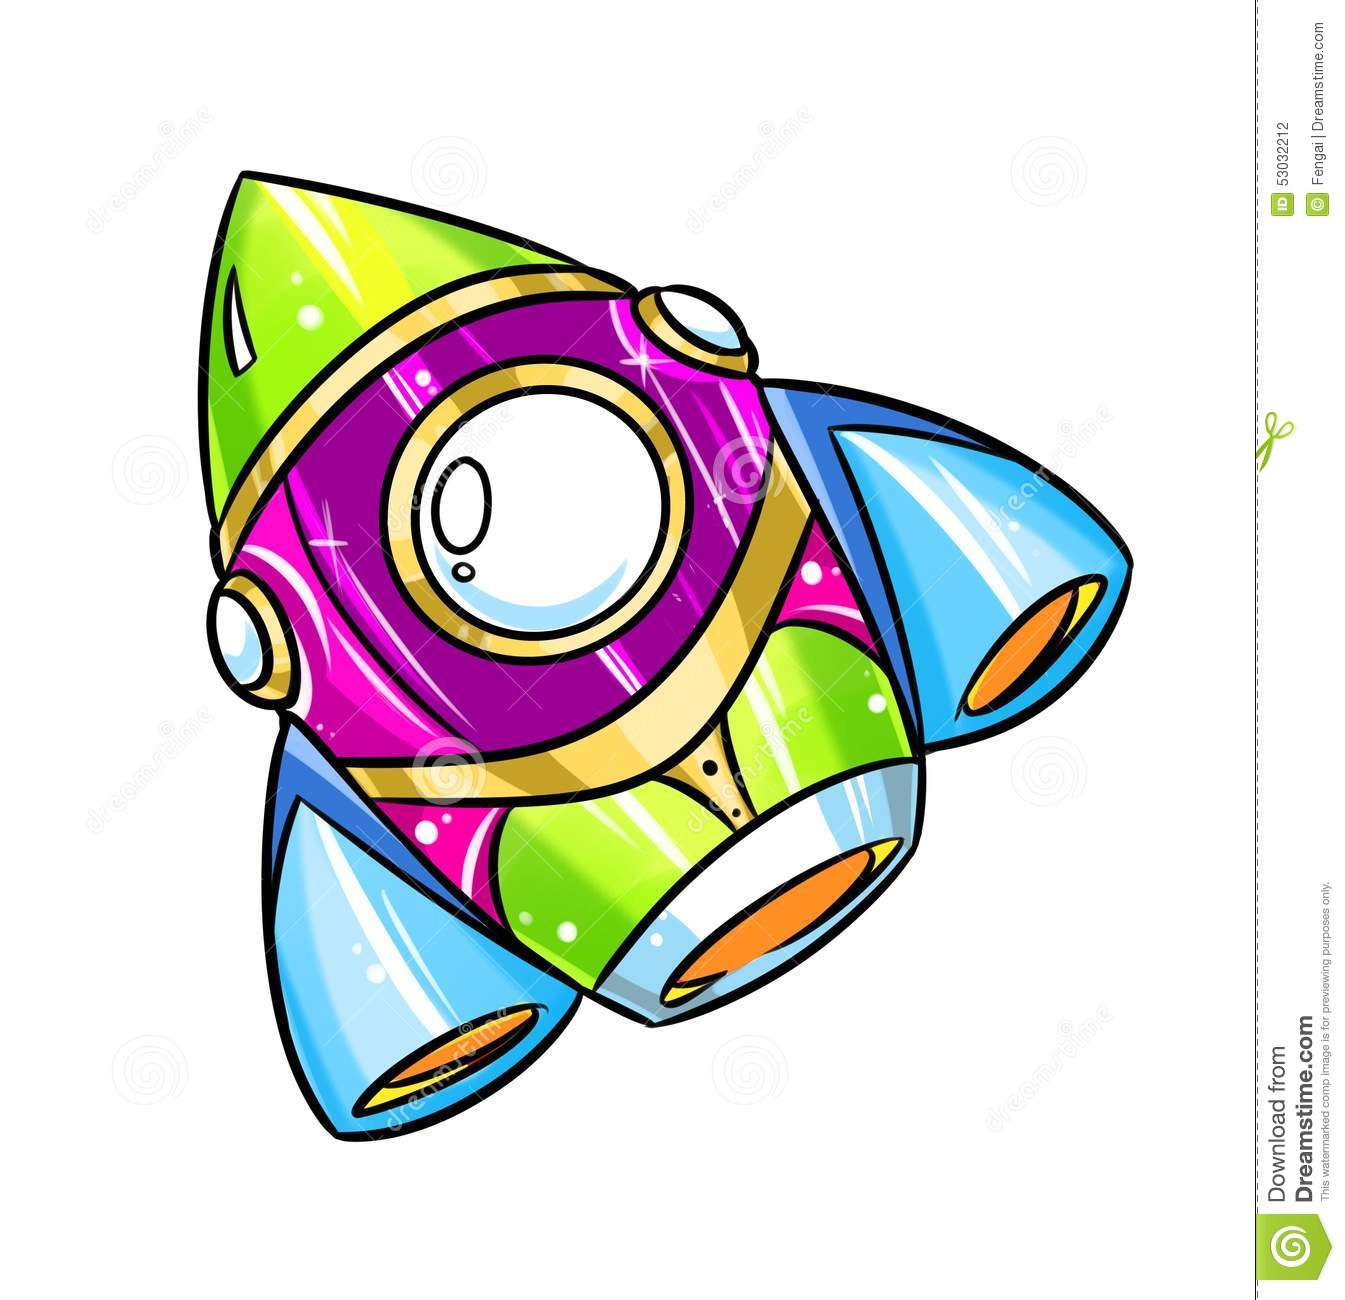 Rocket Cartoon illustration